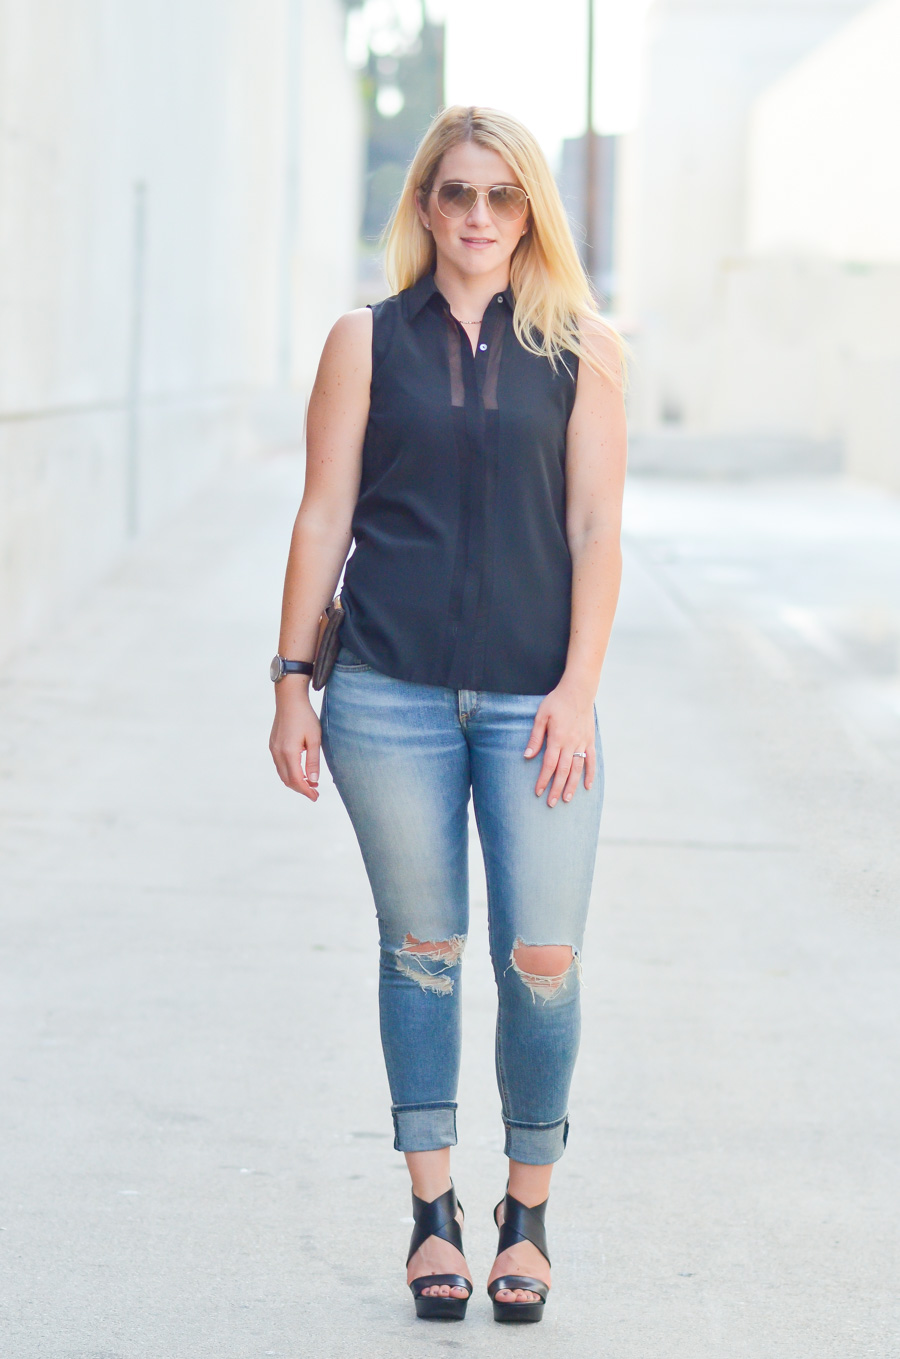 Black Sheer top Outfit - How to Style Distressed Skinny Jeans in Summer